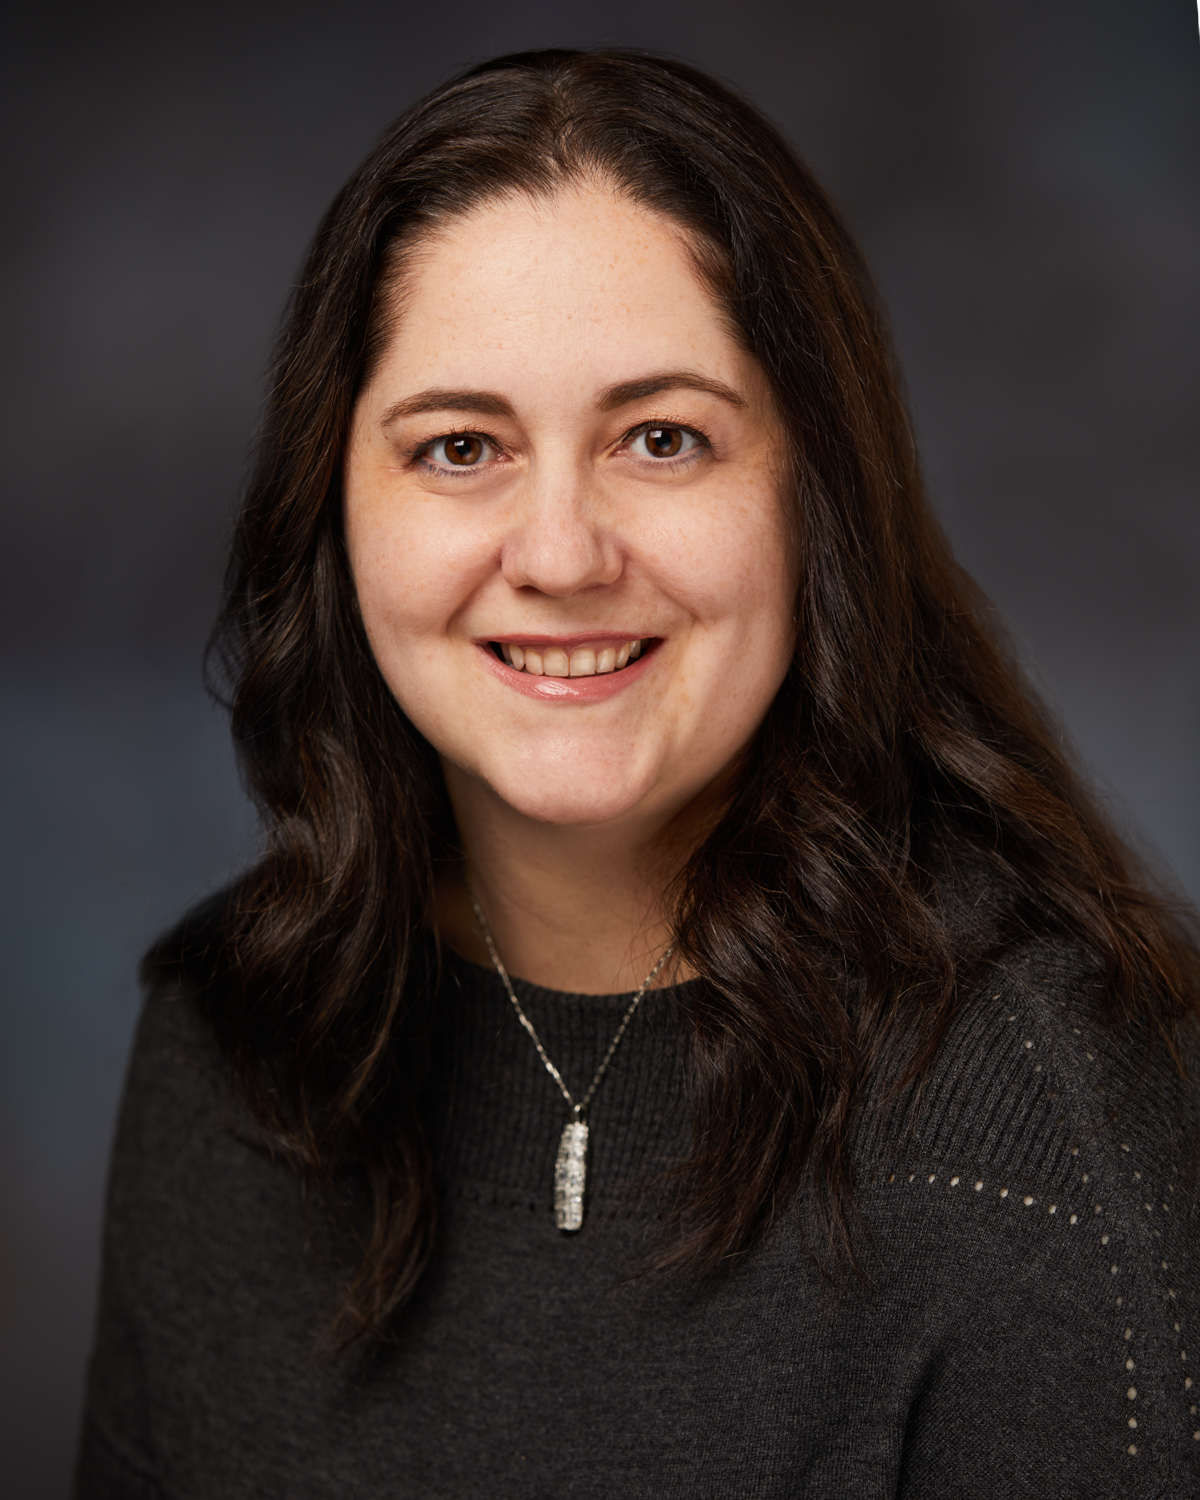 Alina Geller, DO - Physician and Surgeon, Obstetrics and Gynecology, Newberg, OR